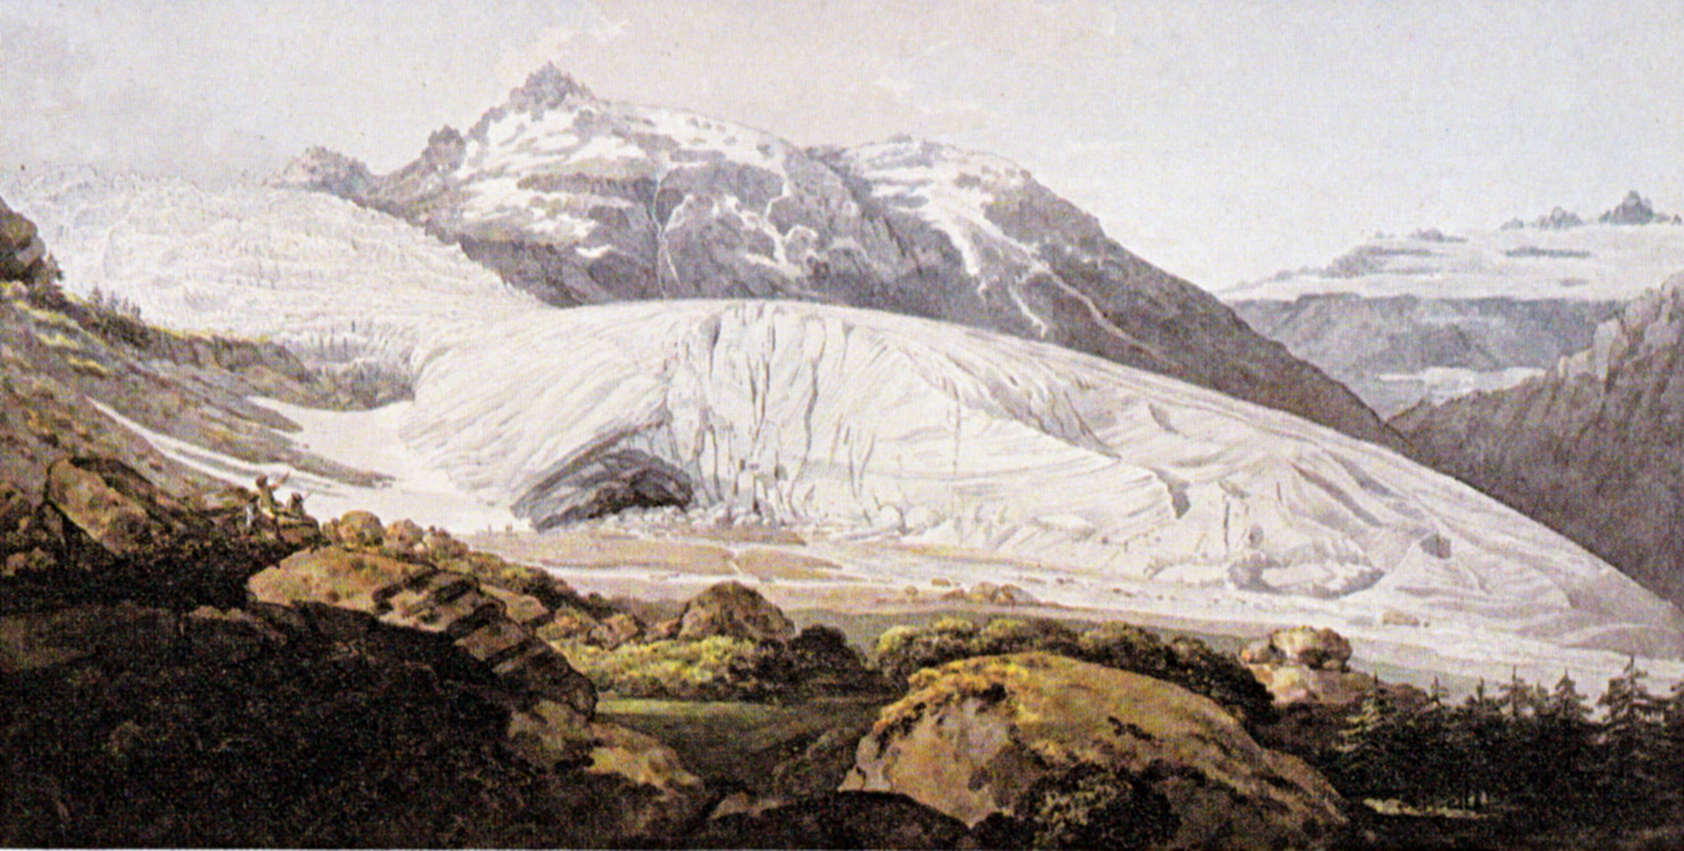 William Pars, the Rhone glacier in Switzerland, 1770